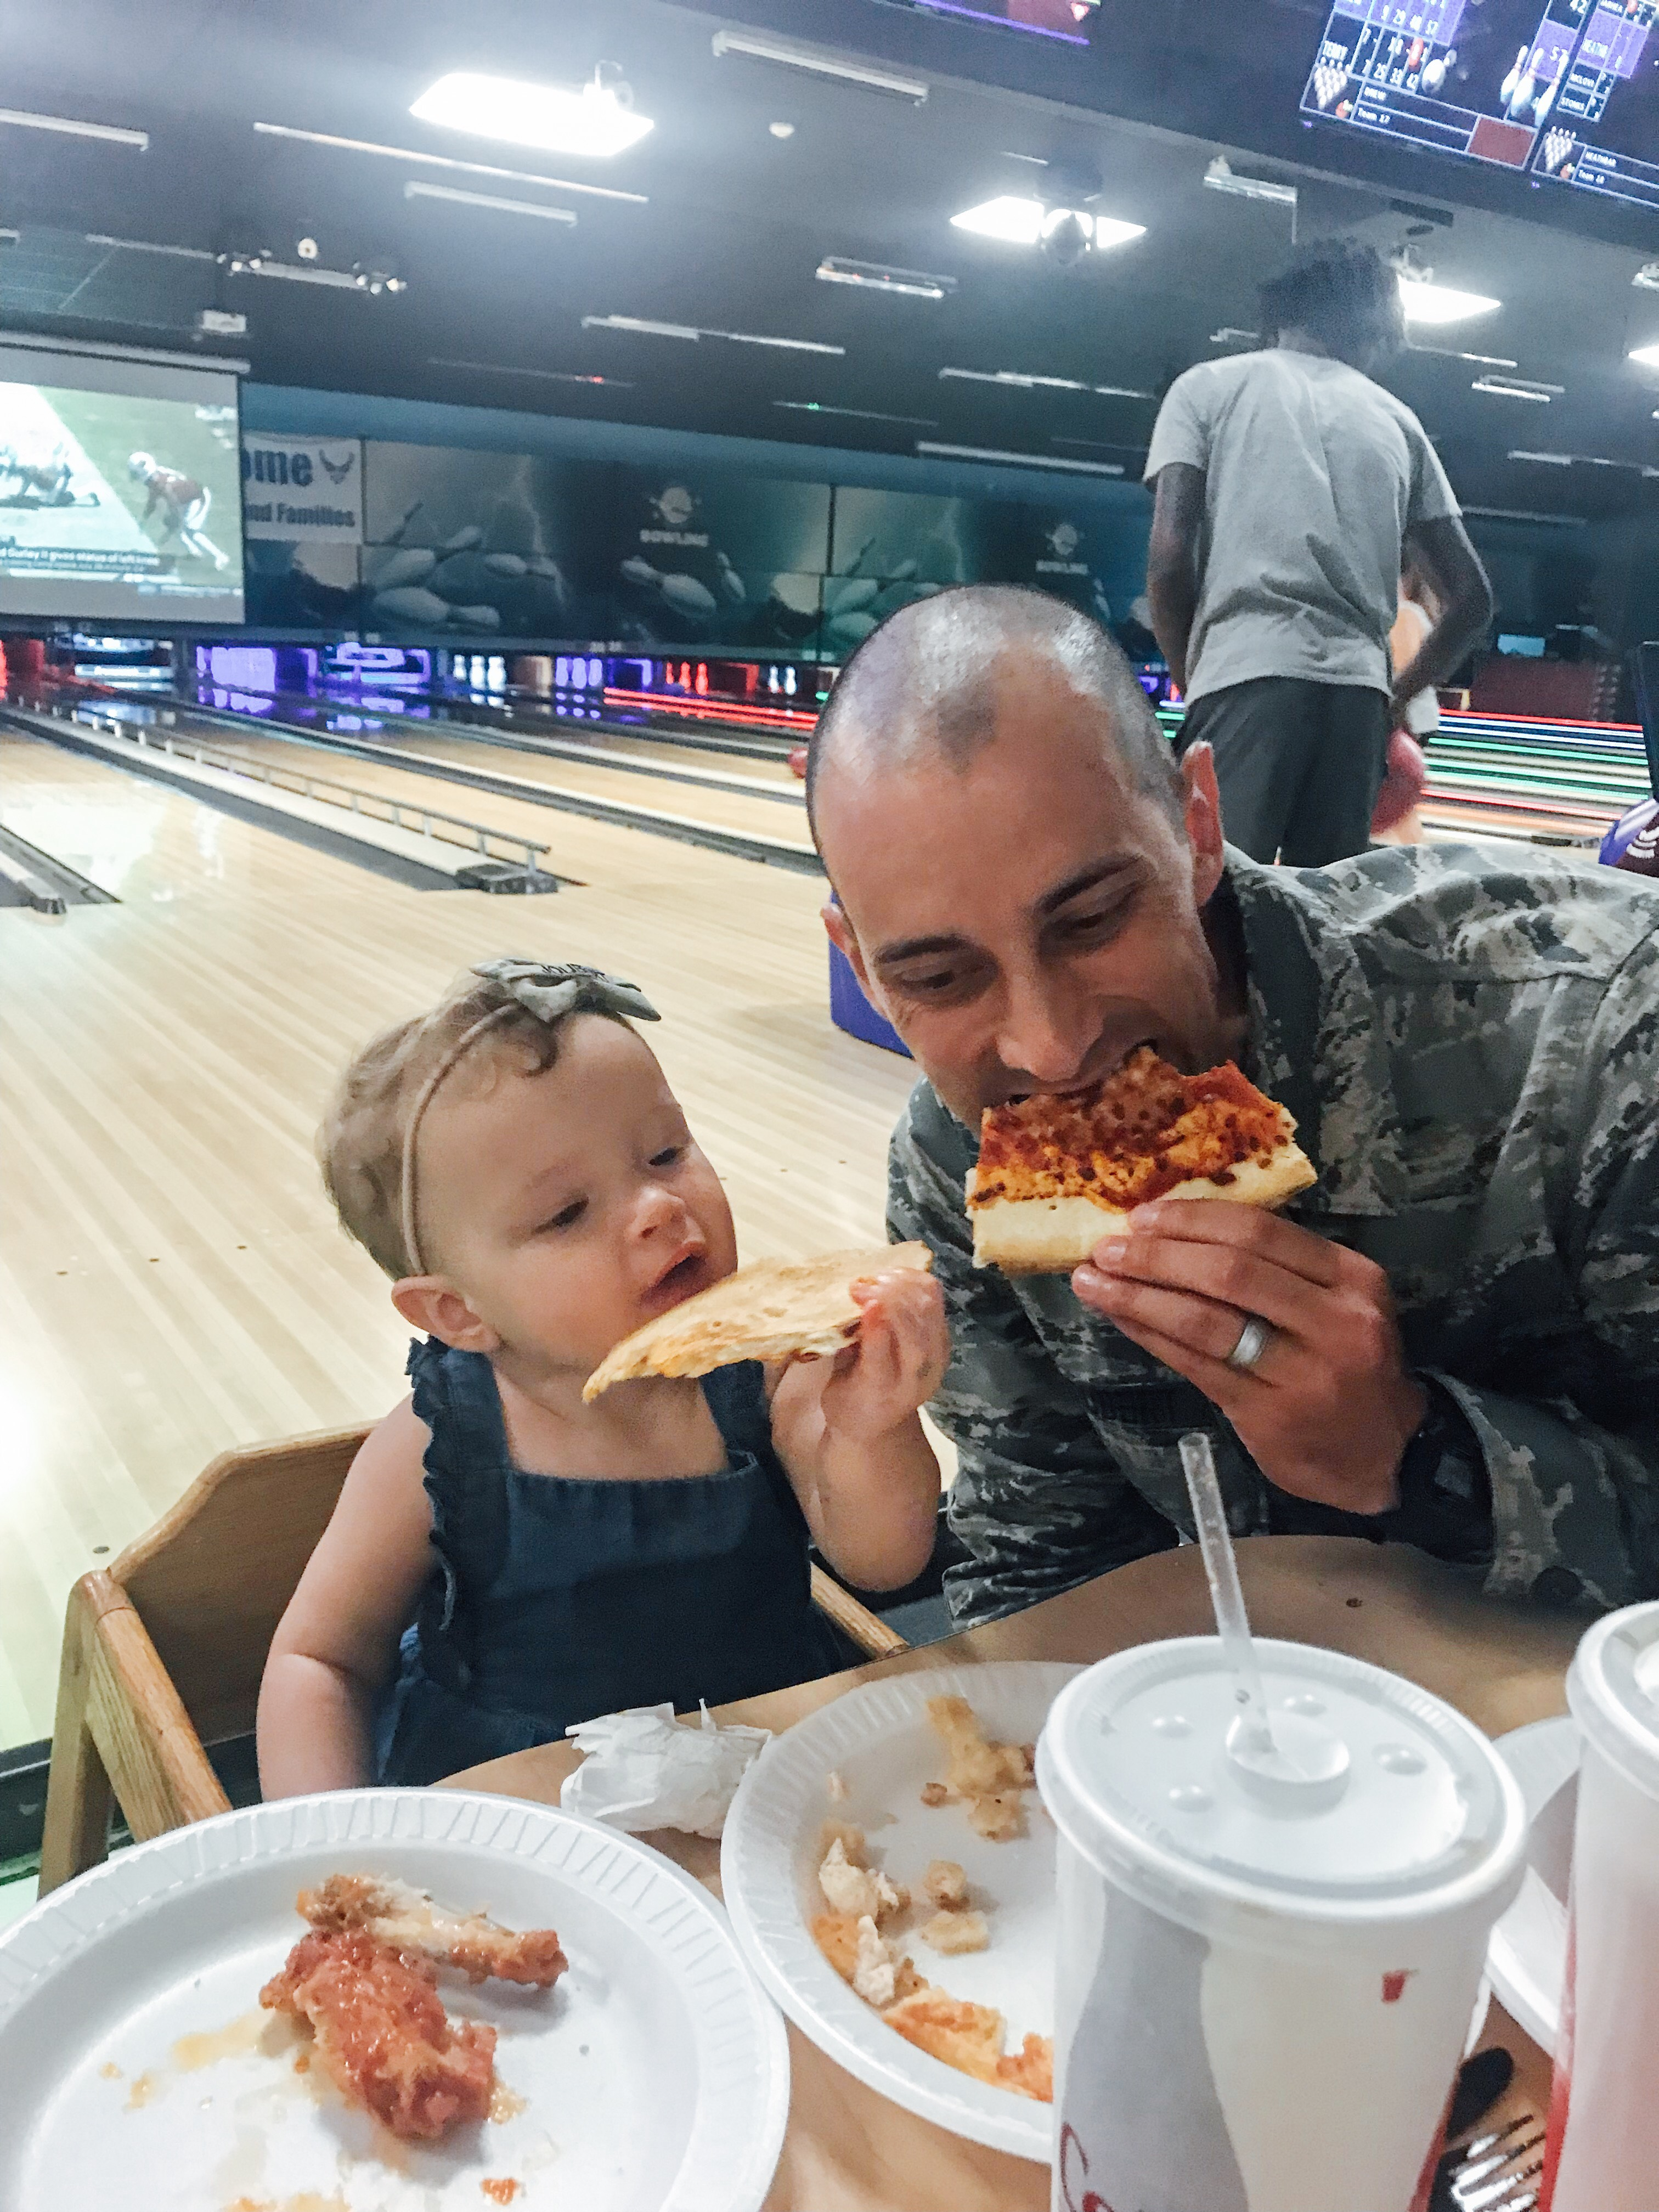 Cristian Joubert enjoys a slice of pizza with his daughter, Jemma, following his July, 2019, graduation from U.S. Air Force basic training in San Antonio, Texas.